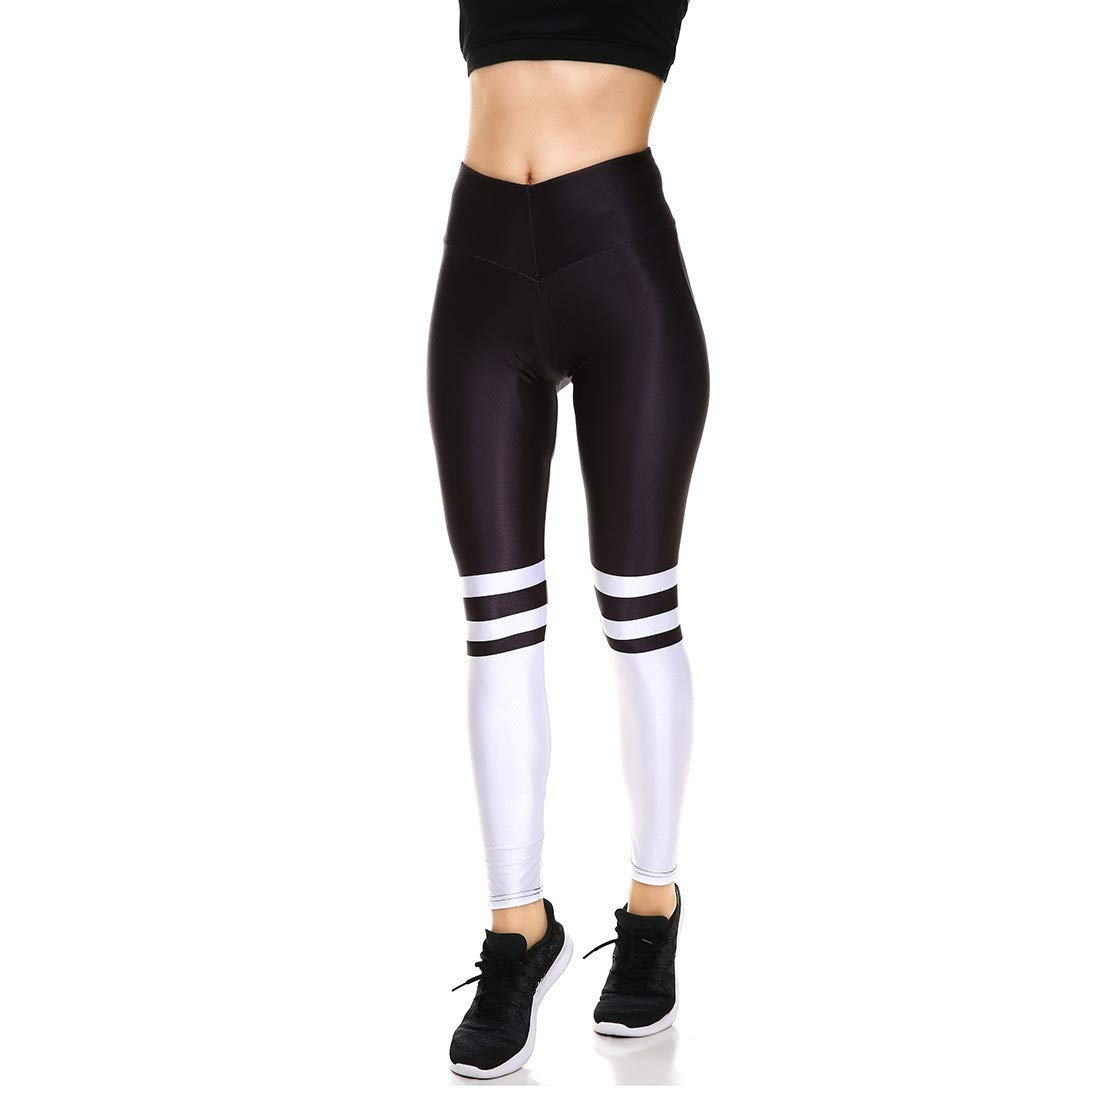 Fanii Quare Women's High Waist Dri-Fit Running Tights Printed Training Compression Workout Pants Black White S